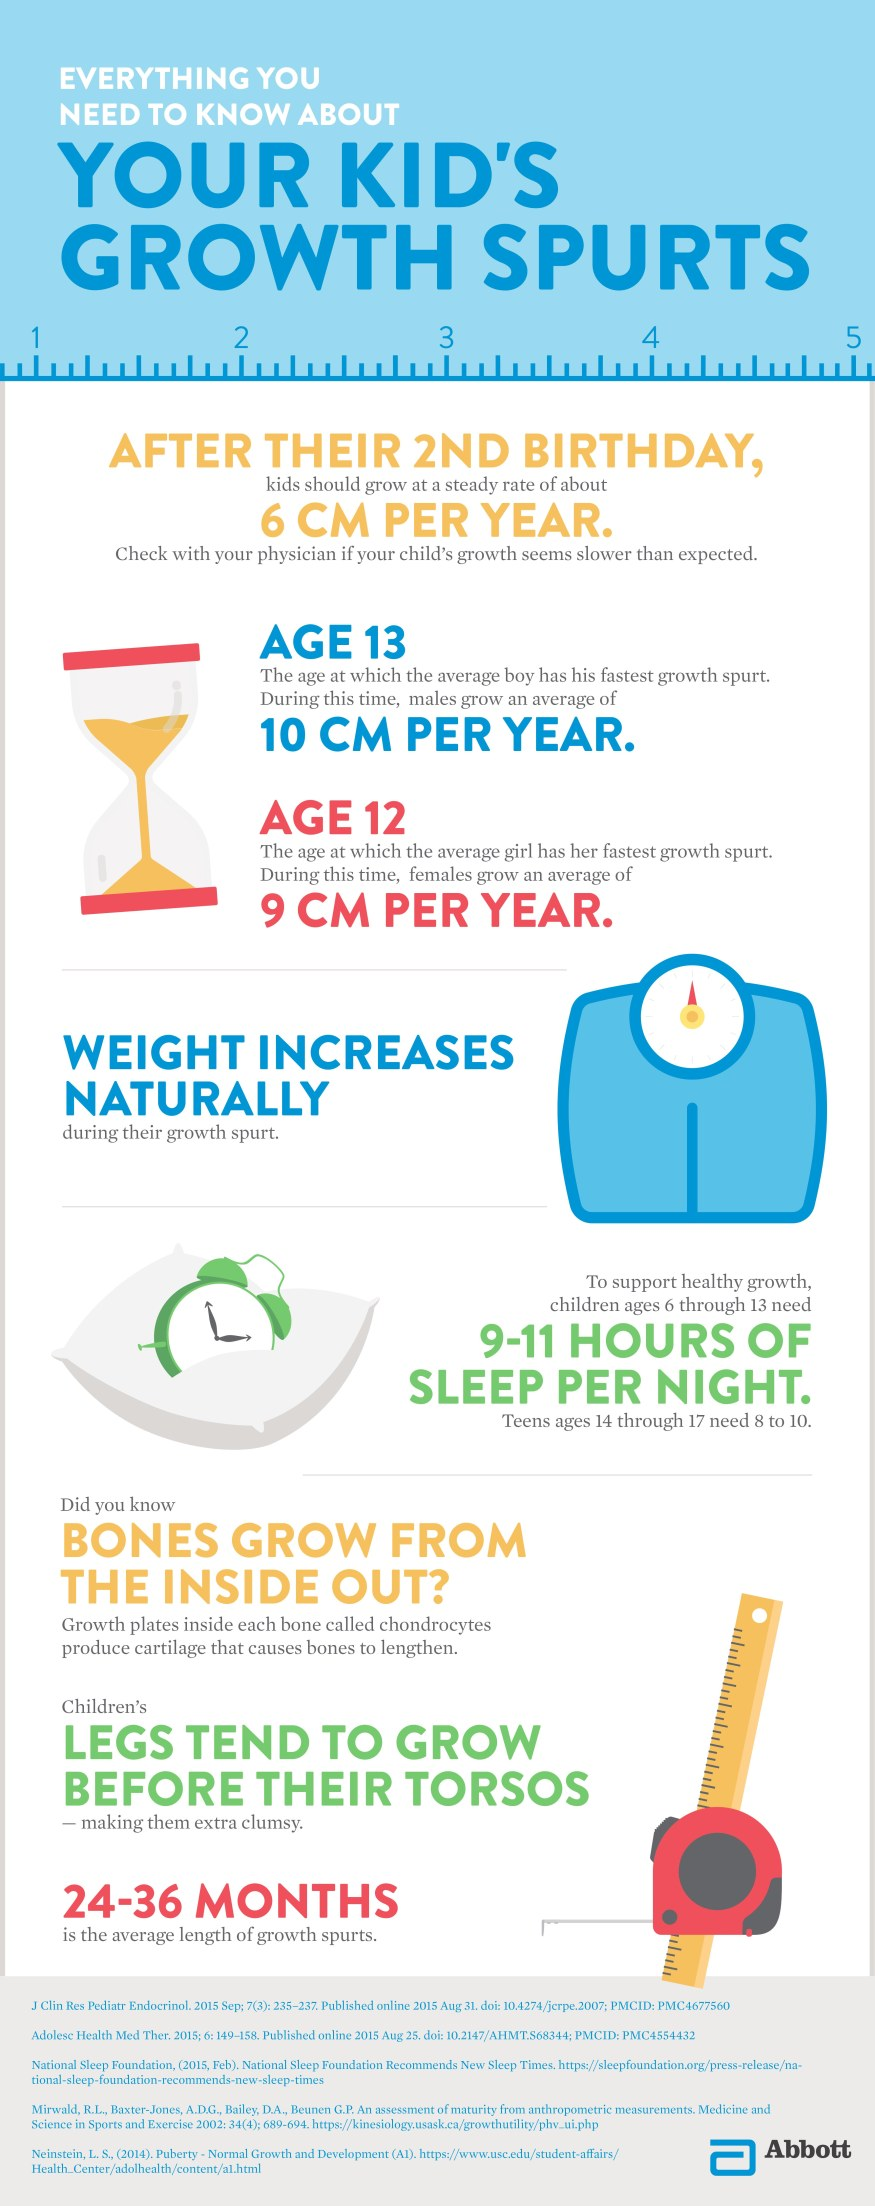 Everything you need to know about your kid's growth spurts flyer